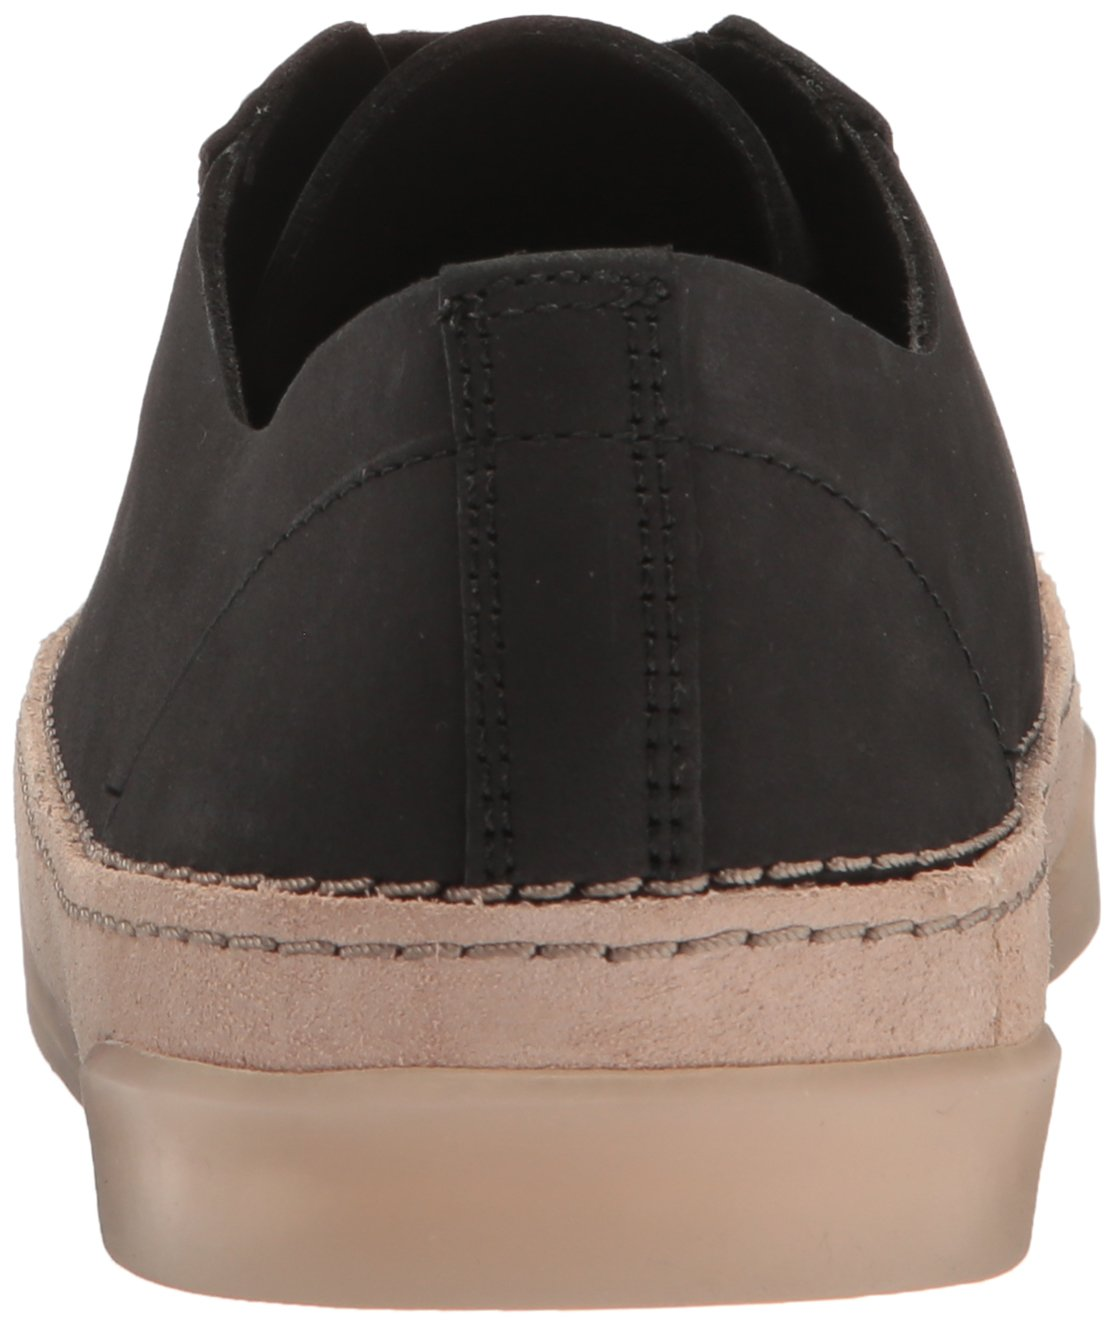 CLARKS Women's Hidi Holly Sneaker B01IACLVTI 8.5 B(M) US|Black Nubuck